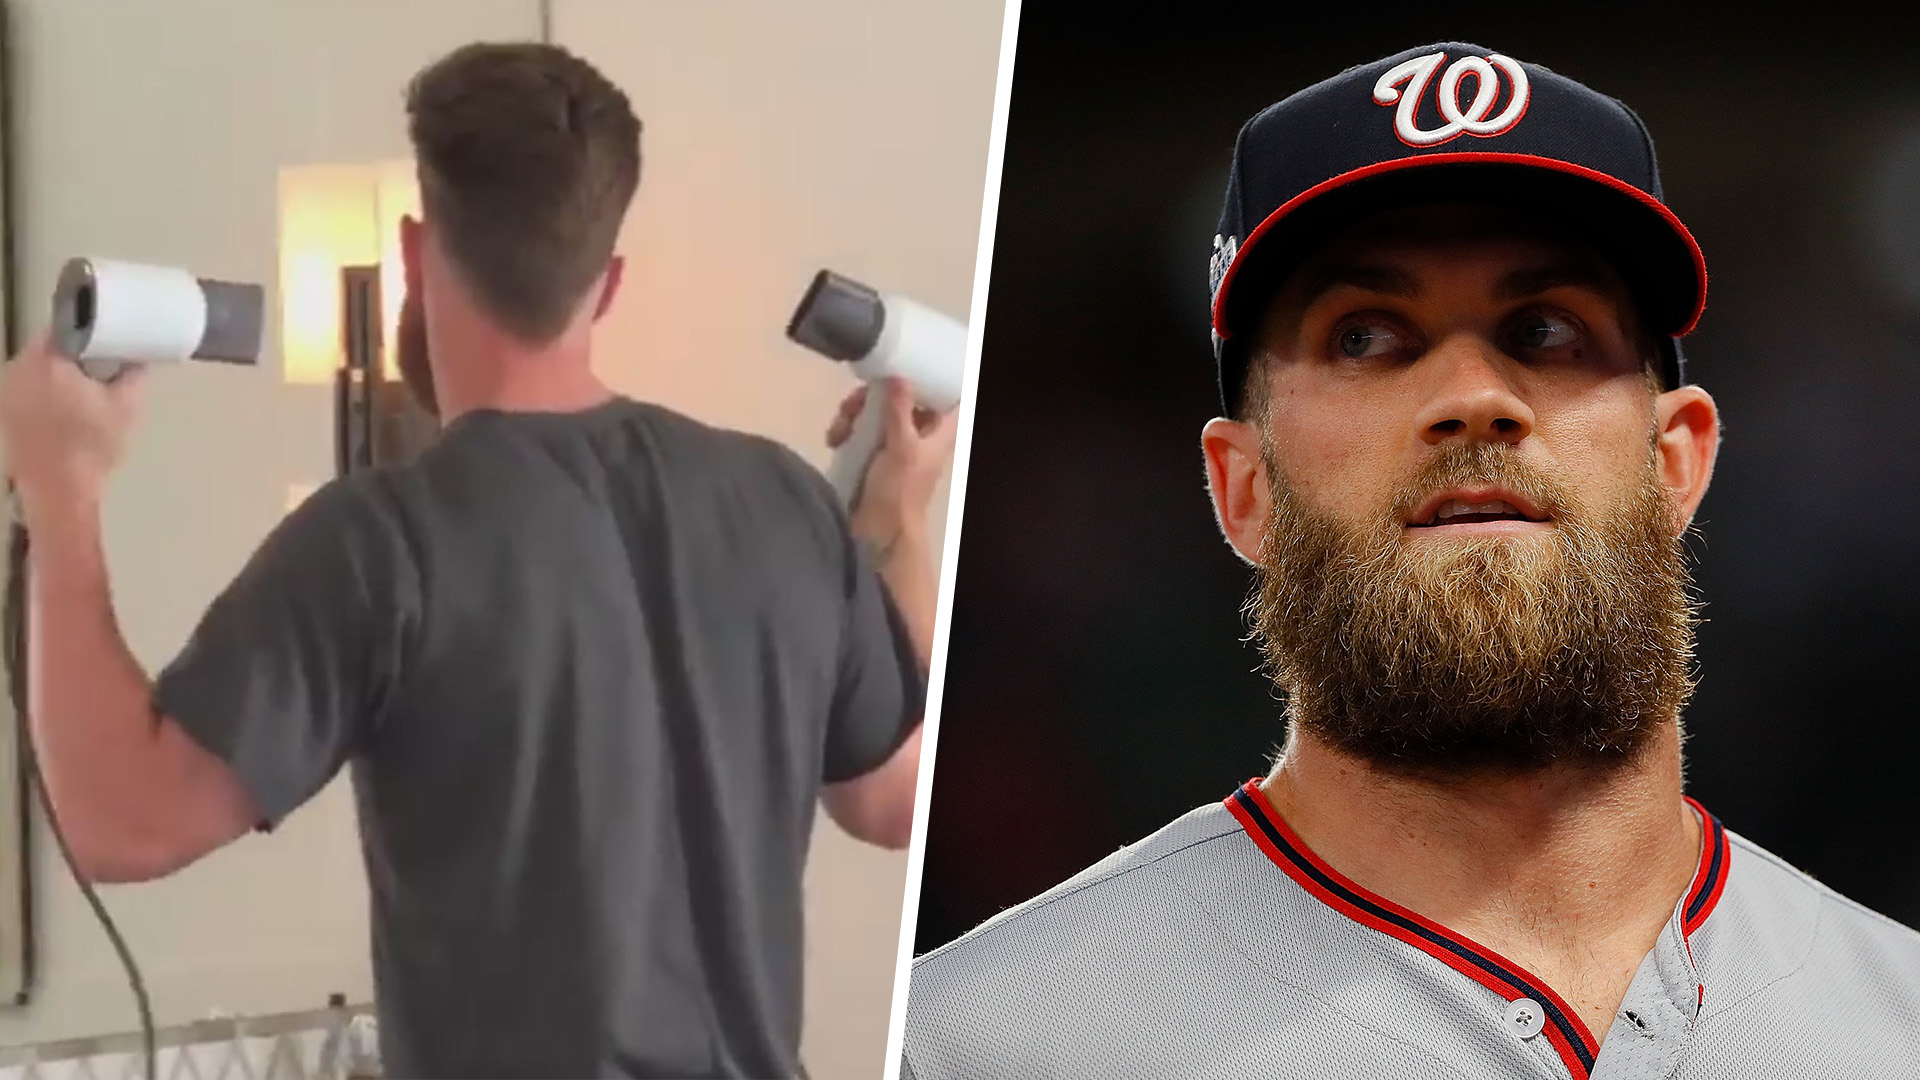 Bryce Harpers Brother Catches Him Using 2 Hair Dryers